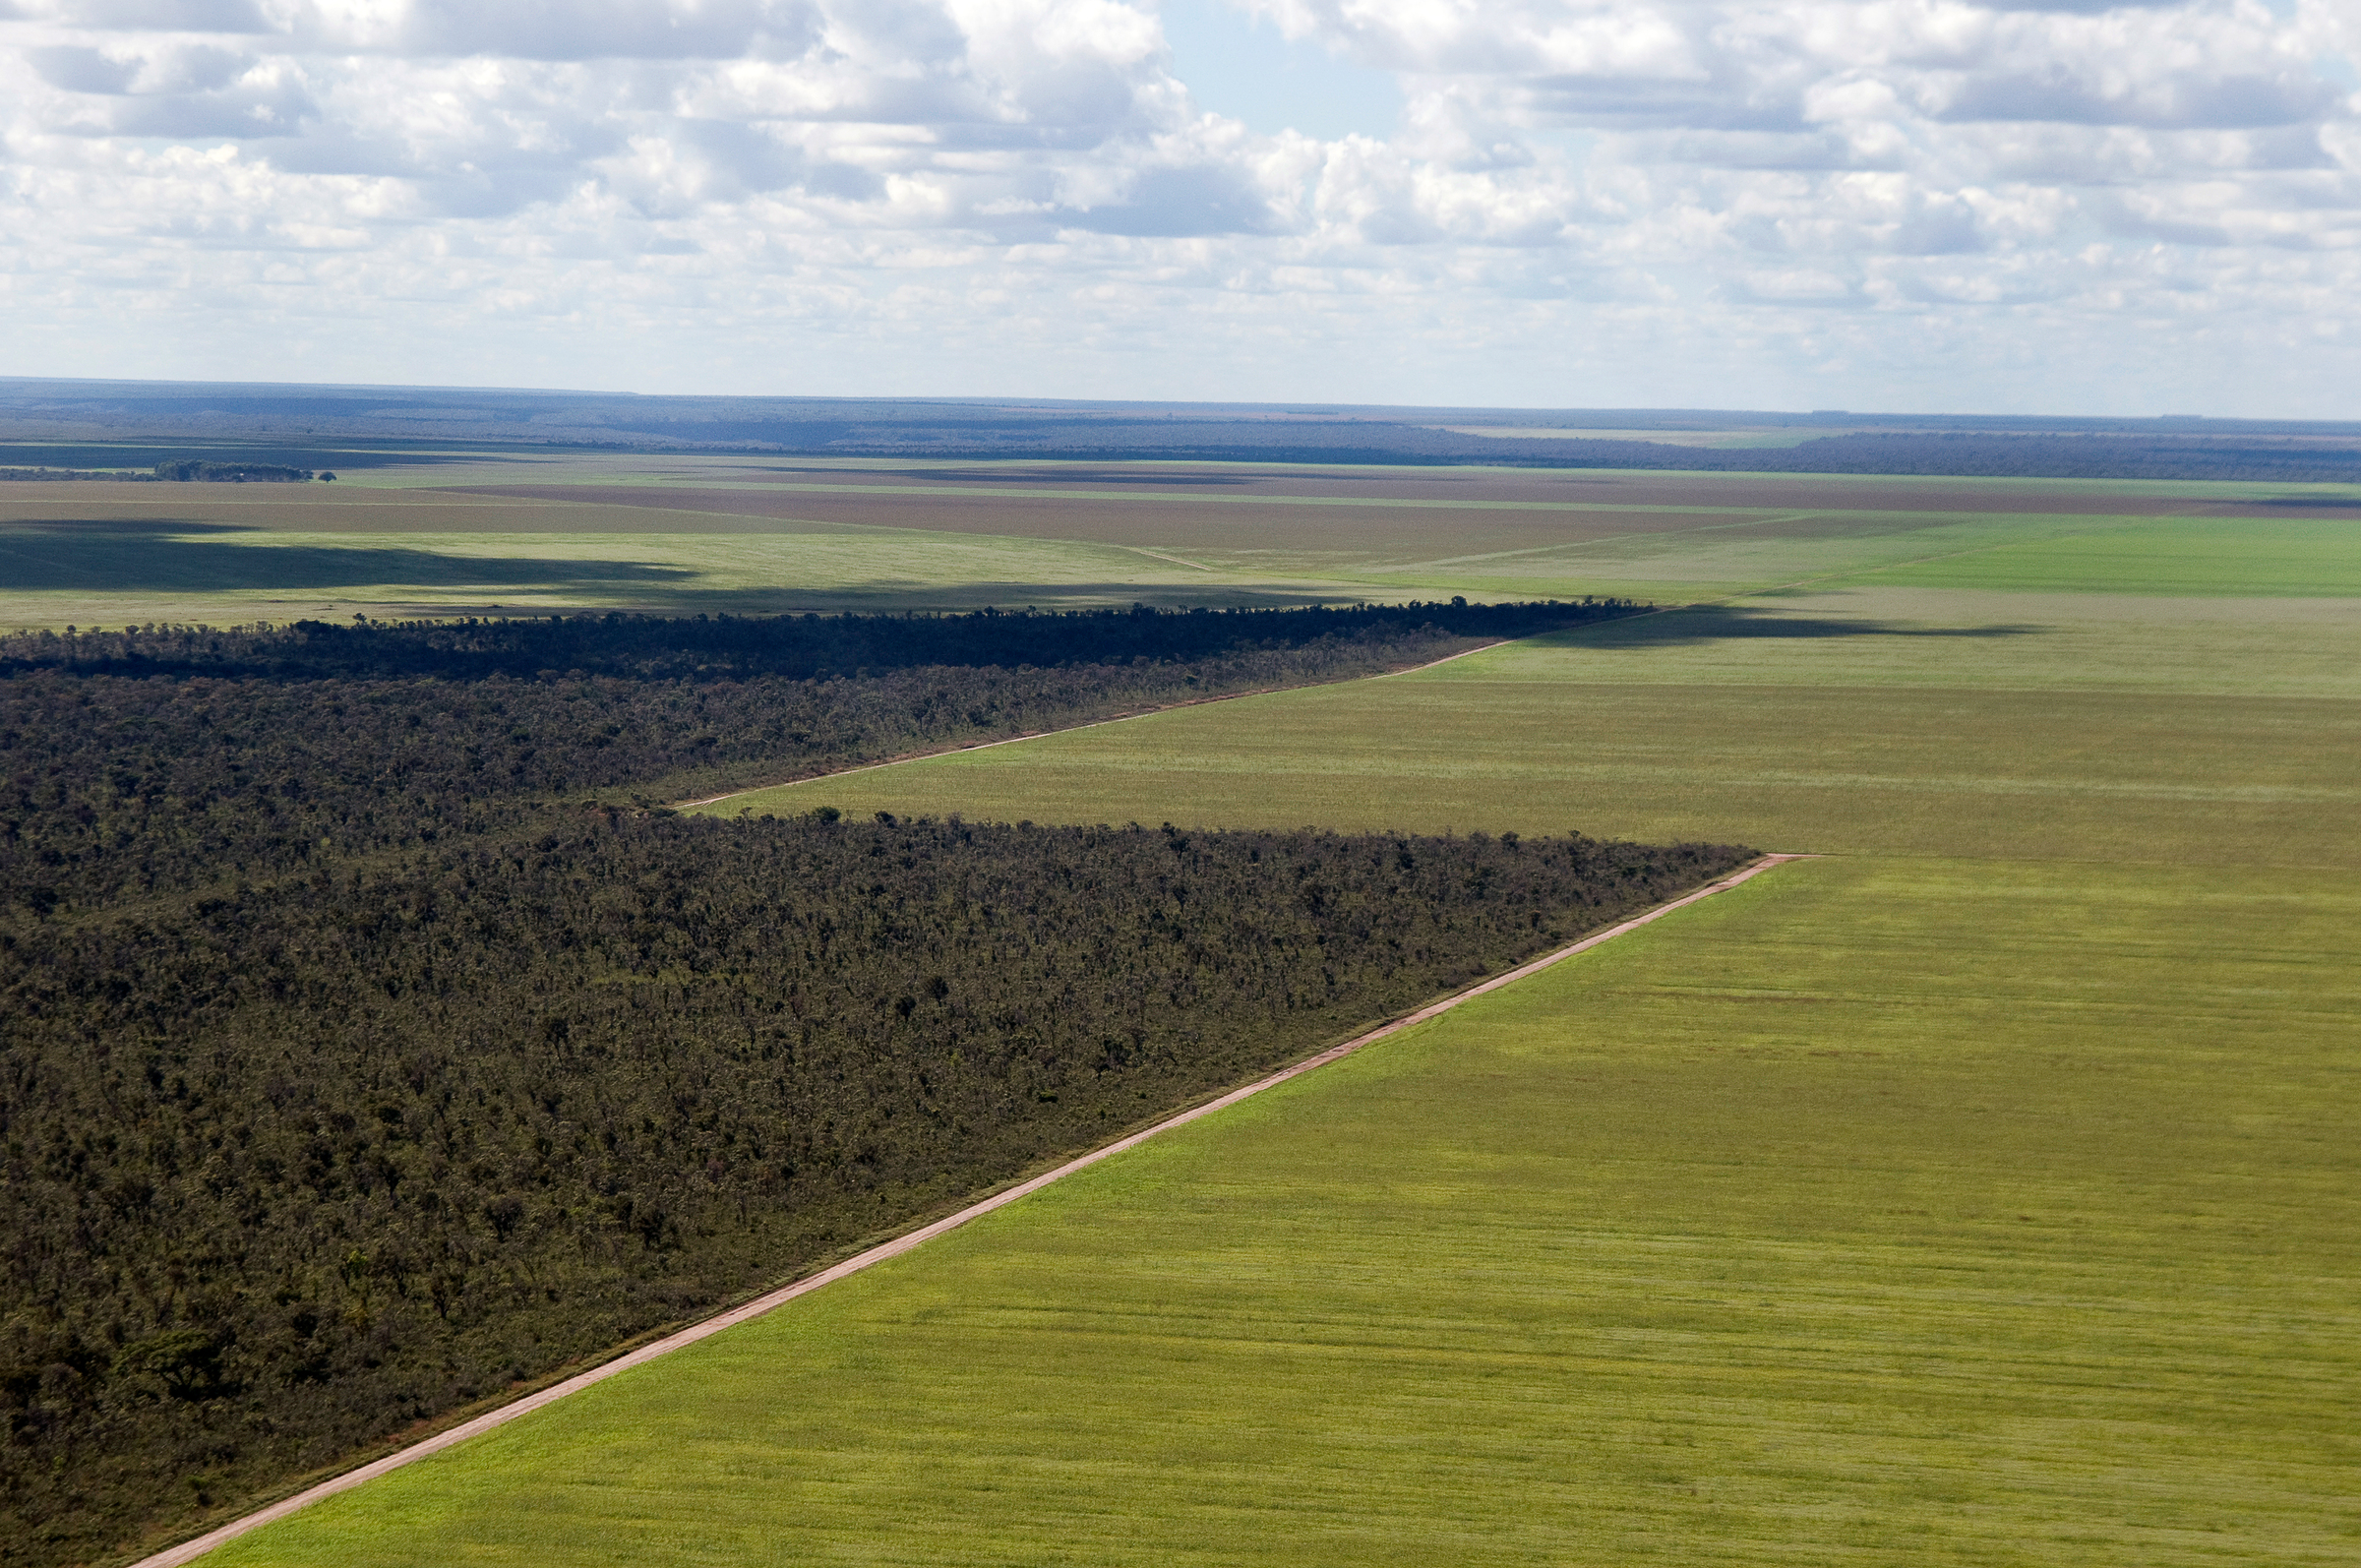 Soy plantations have encroached on the Cerrado in Brazil (Adriano Gambarini/ WWF-Brazil)